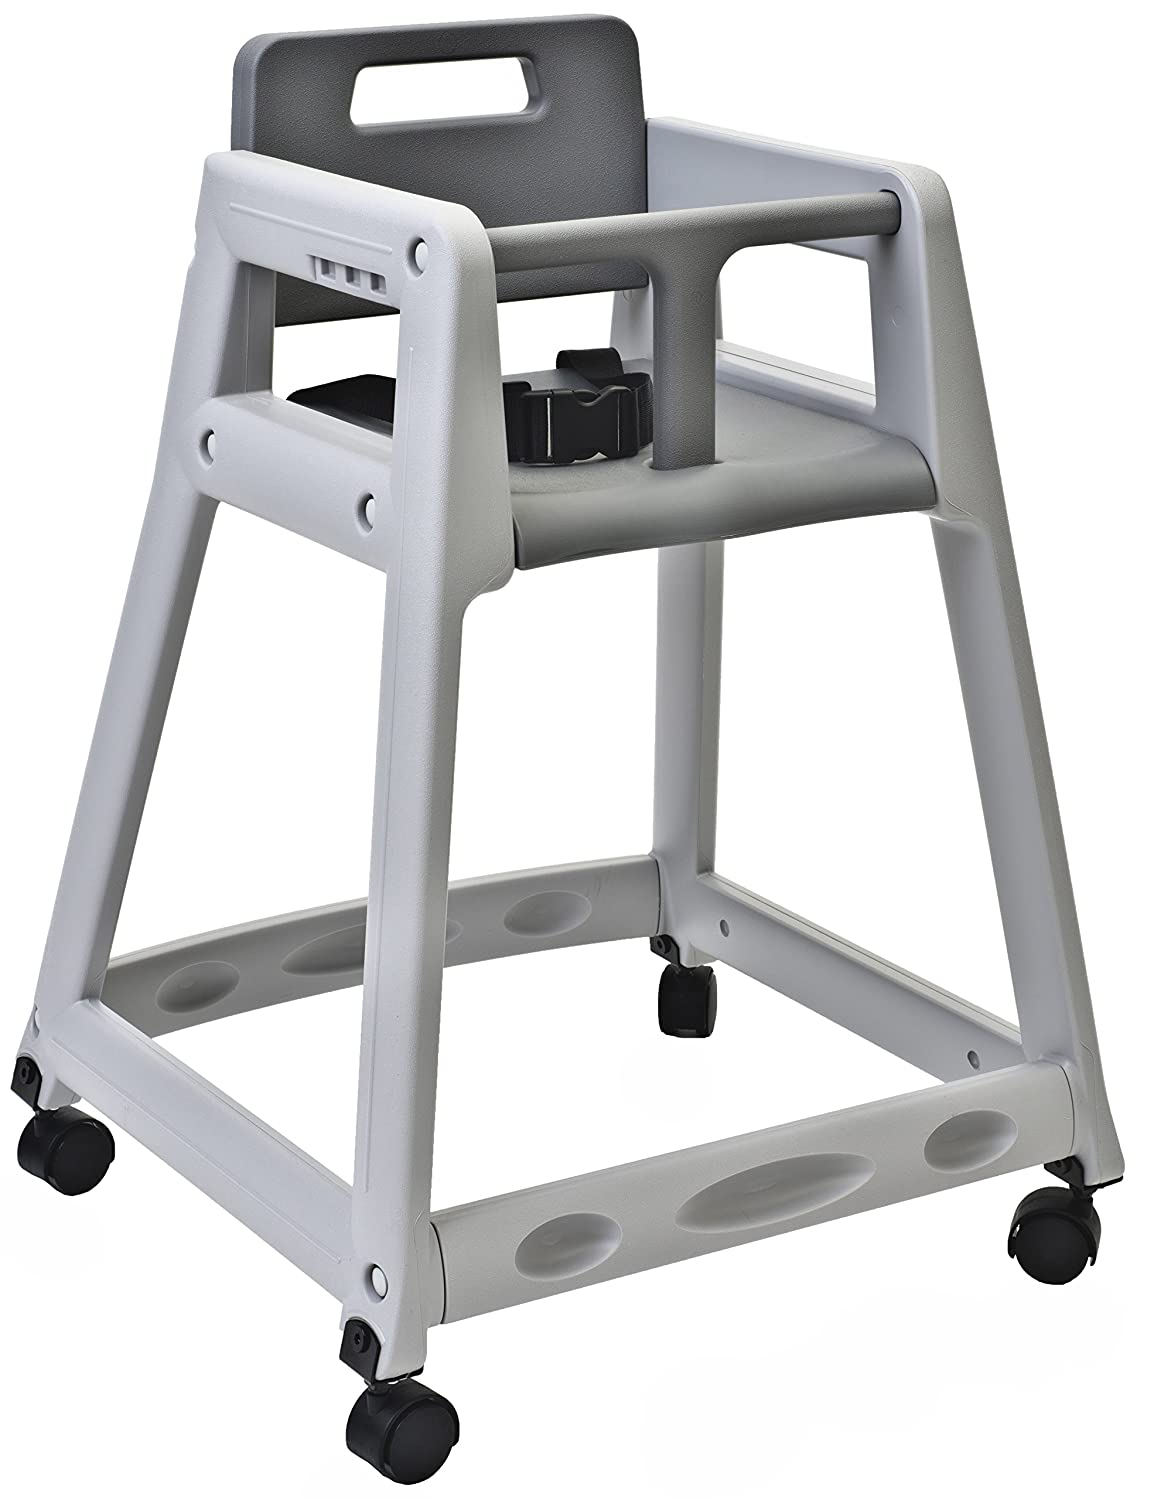 Koala Kare KB850 01W Diner Plastic High Chair with Caster Wheels Grey 23 Height 23 Width 30 Length